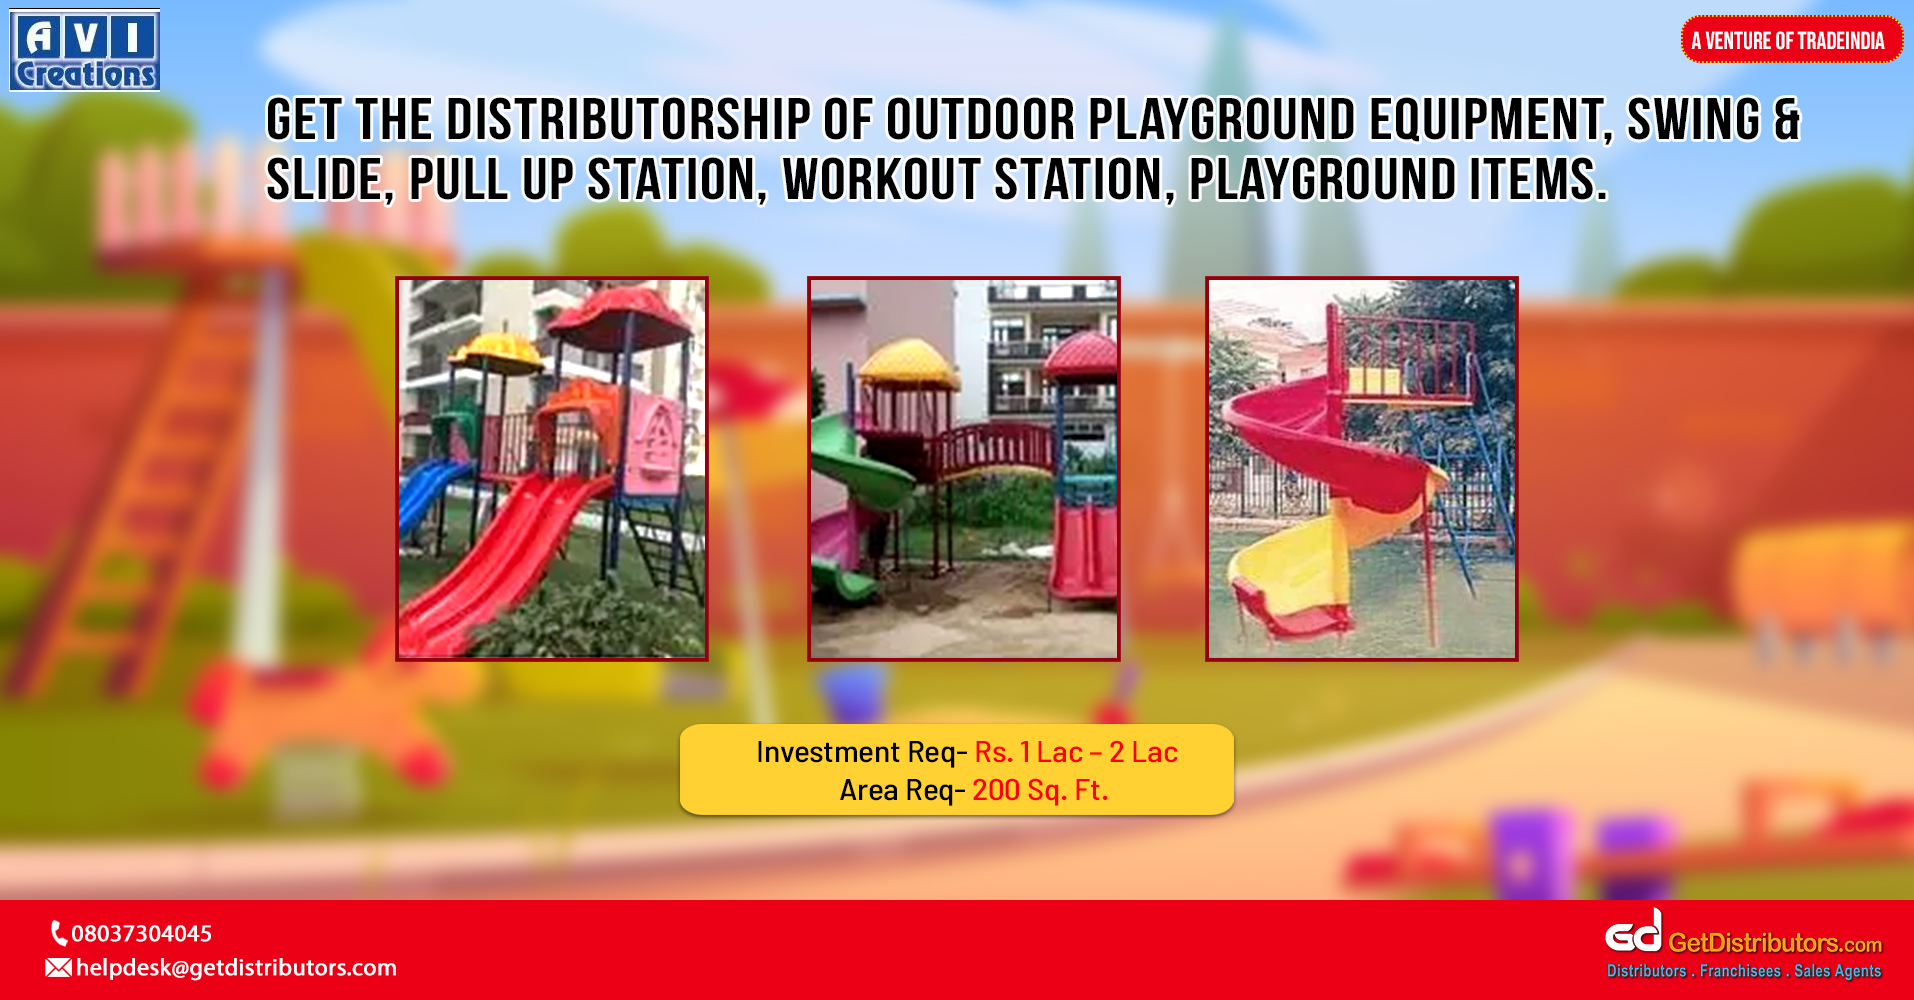 A huge array of playground equipment and other products for children